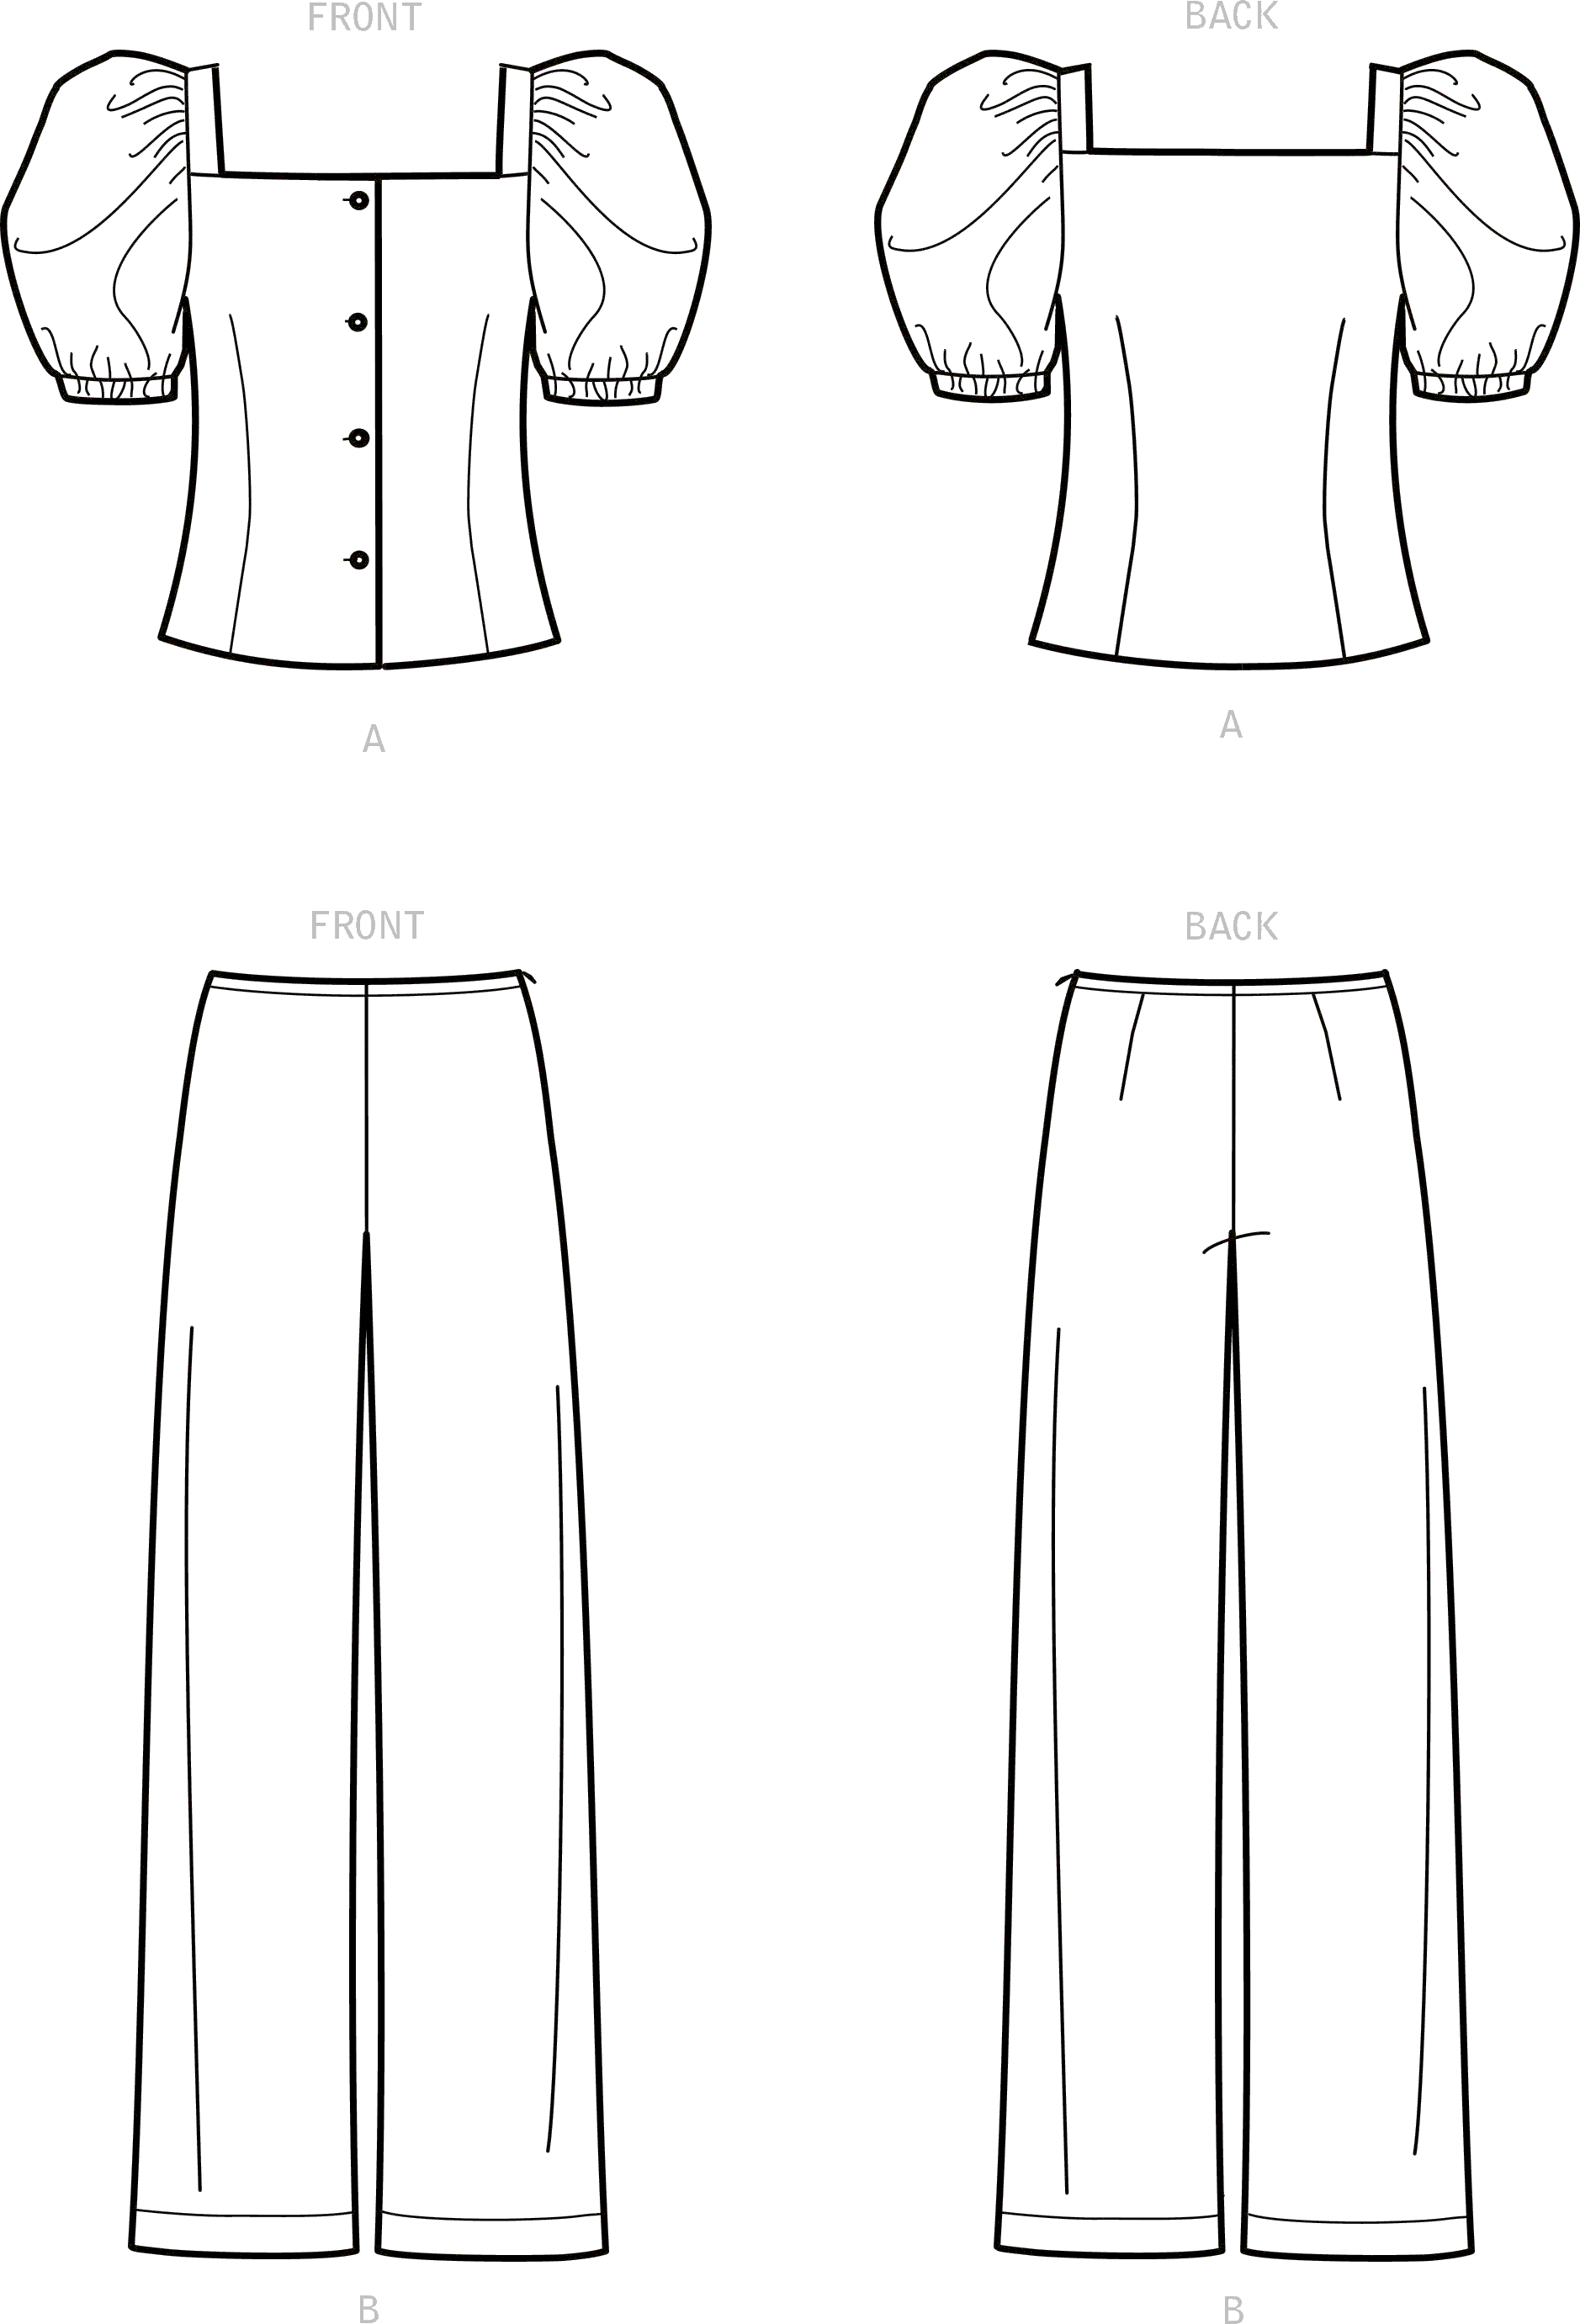 New Look Sewing Pattern N6678 Misses Top and Trousers 6678 Line Art From Patternsandplains.com